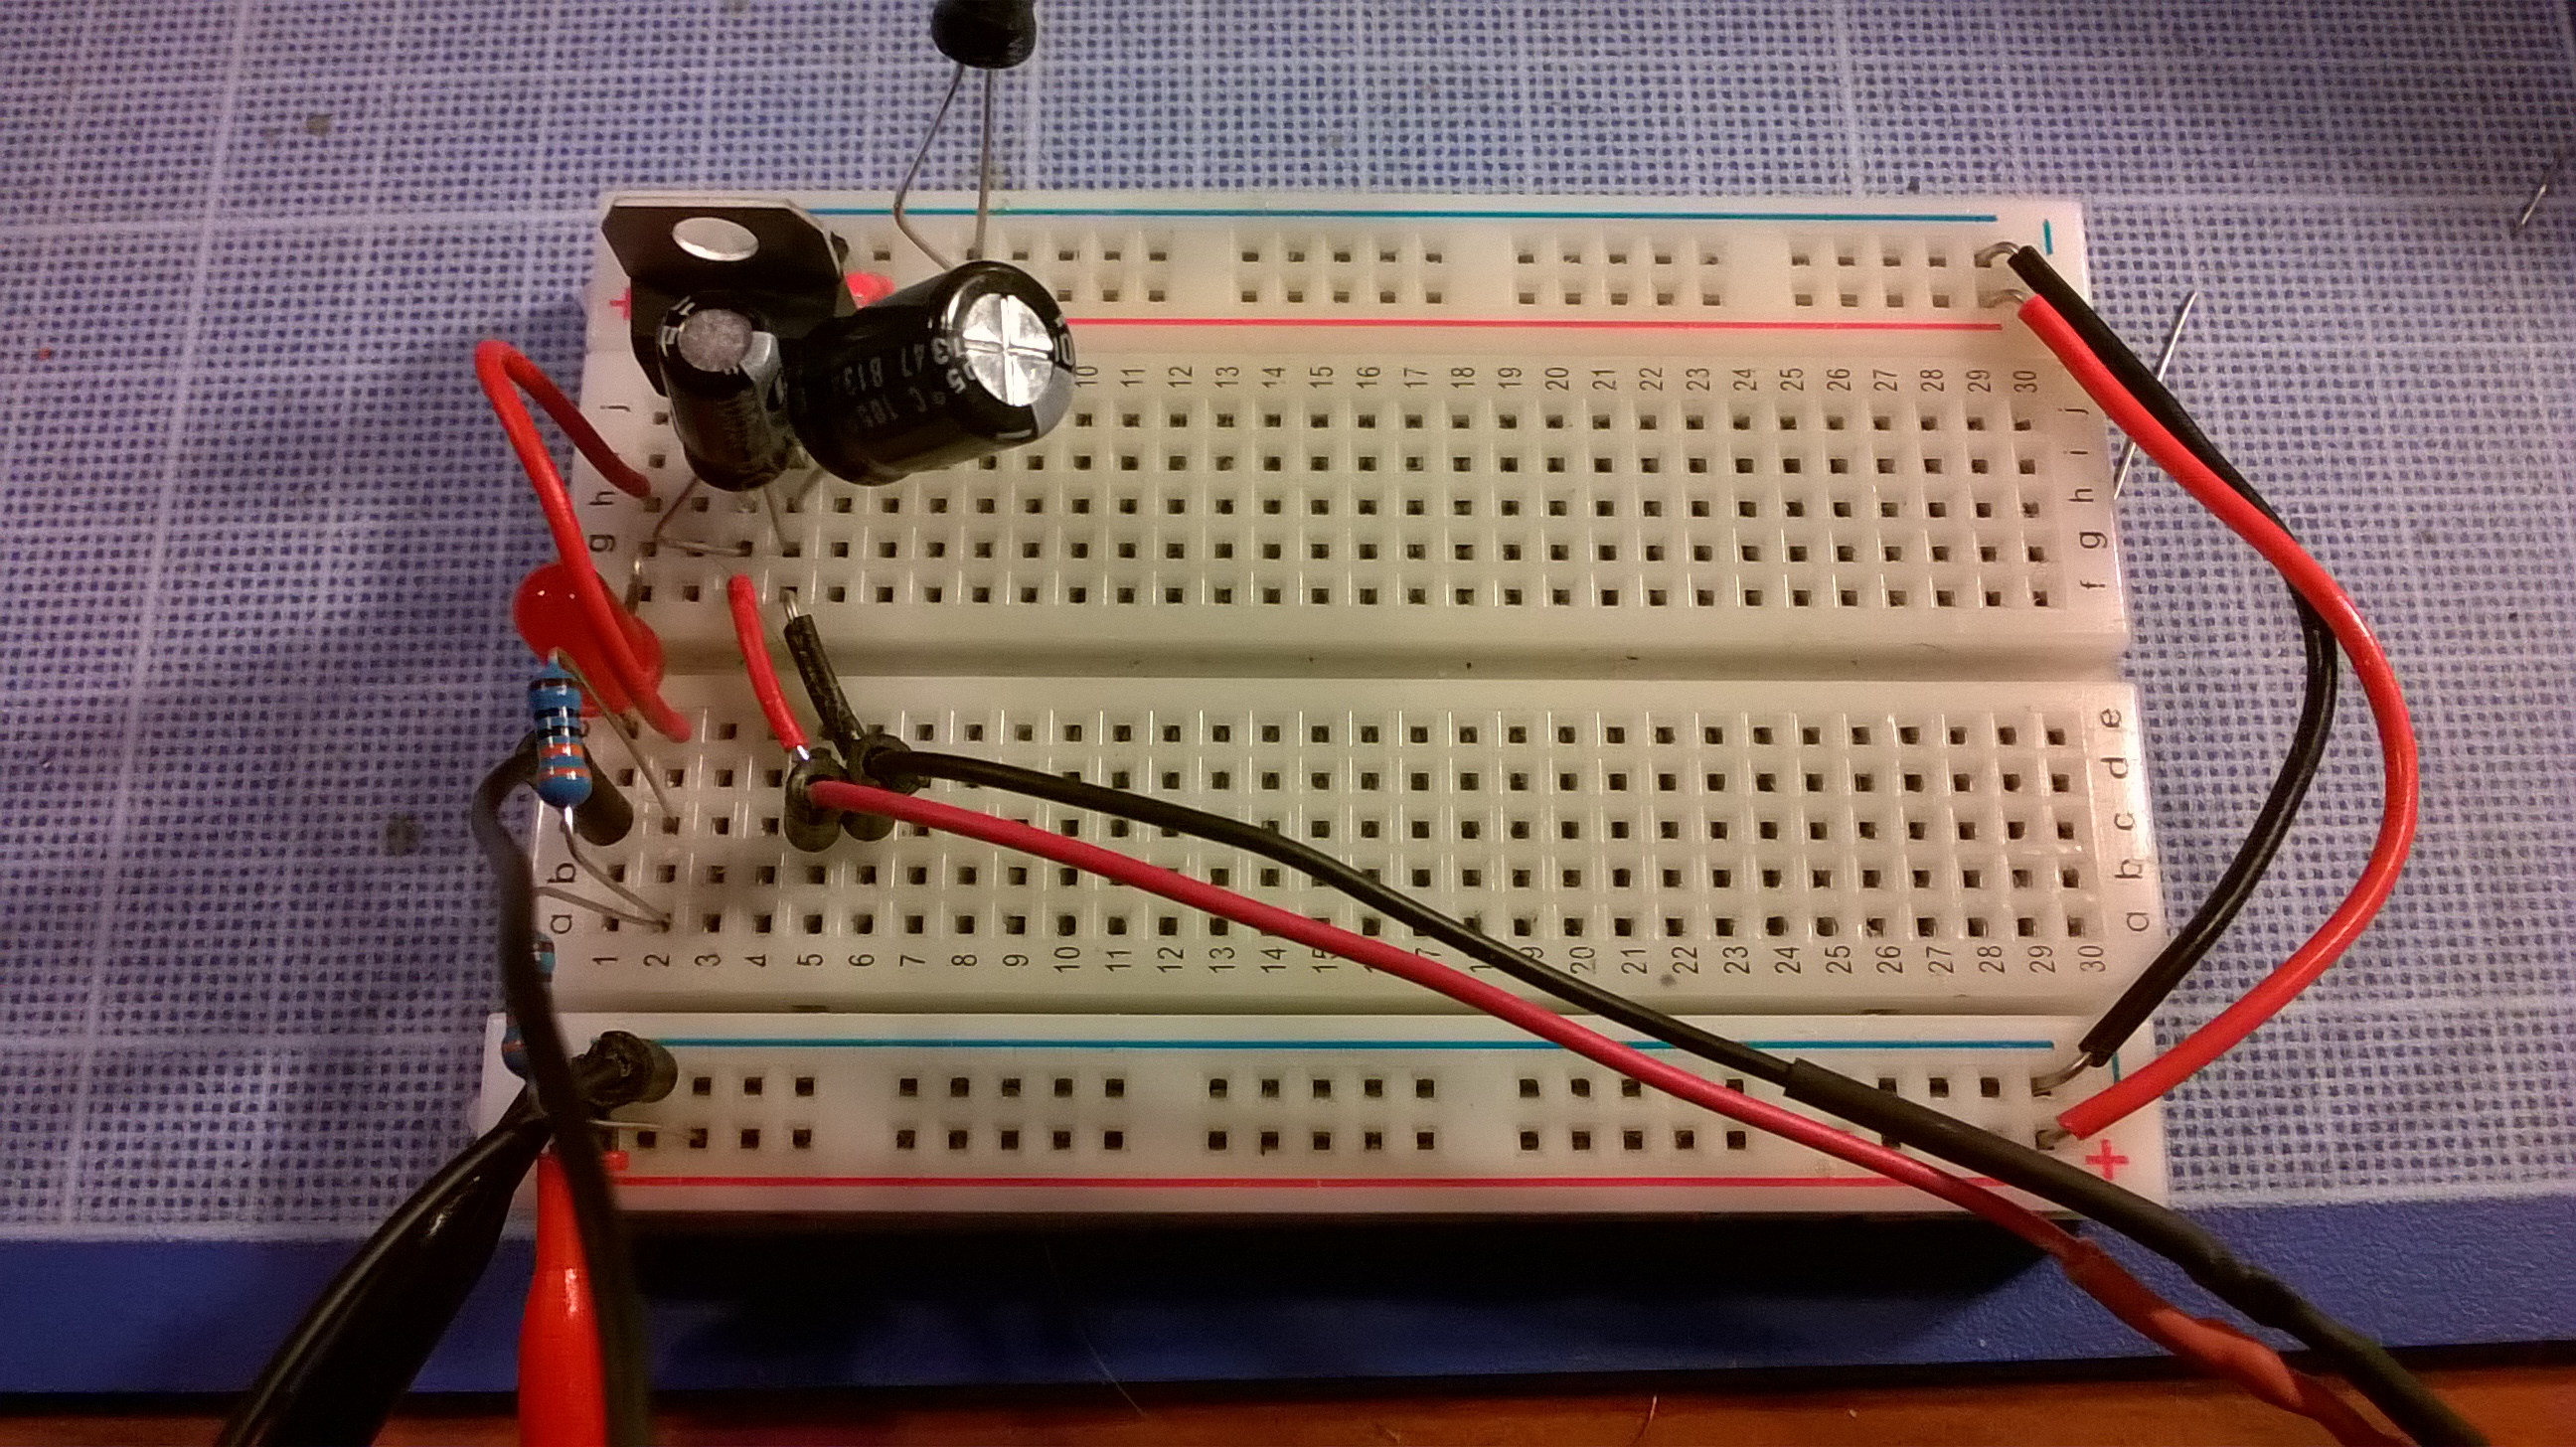 Arduino On A Breadboard Problem With 7805 Voltage Regulator Blew 12 Fixing The Power Supply Site For This Is Last Evolution Of My Attempts 2 Long Red And Black Wires Are Coming From Which Computer Psu Unit Giving Me Volts